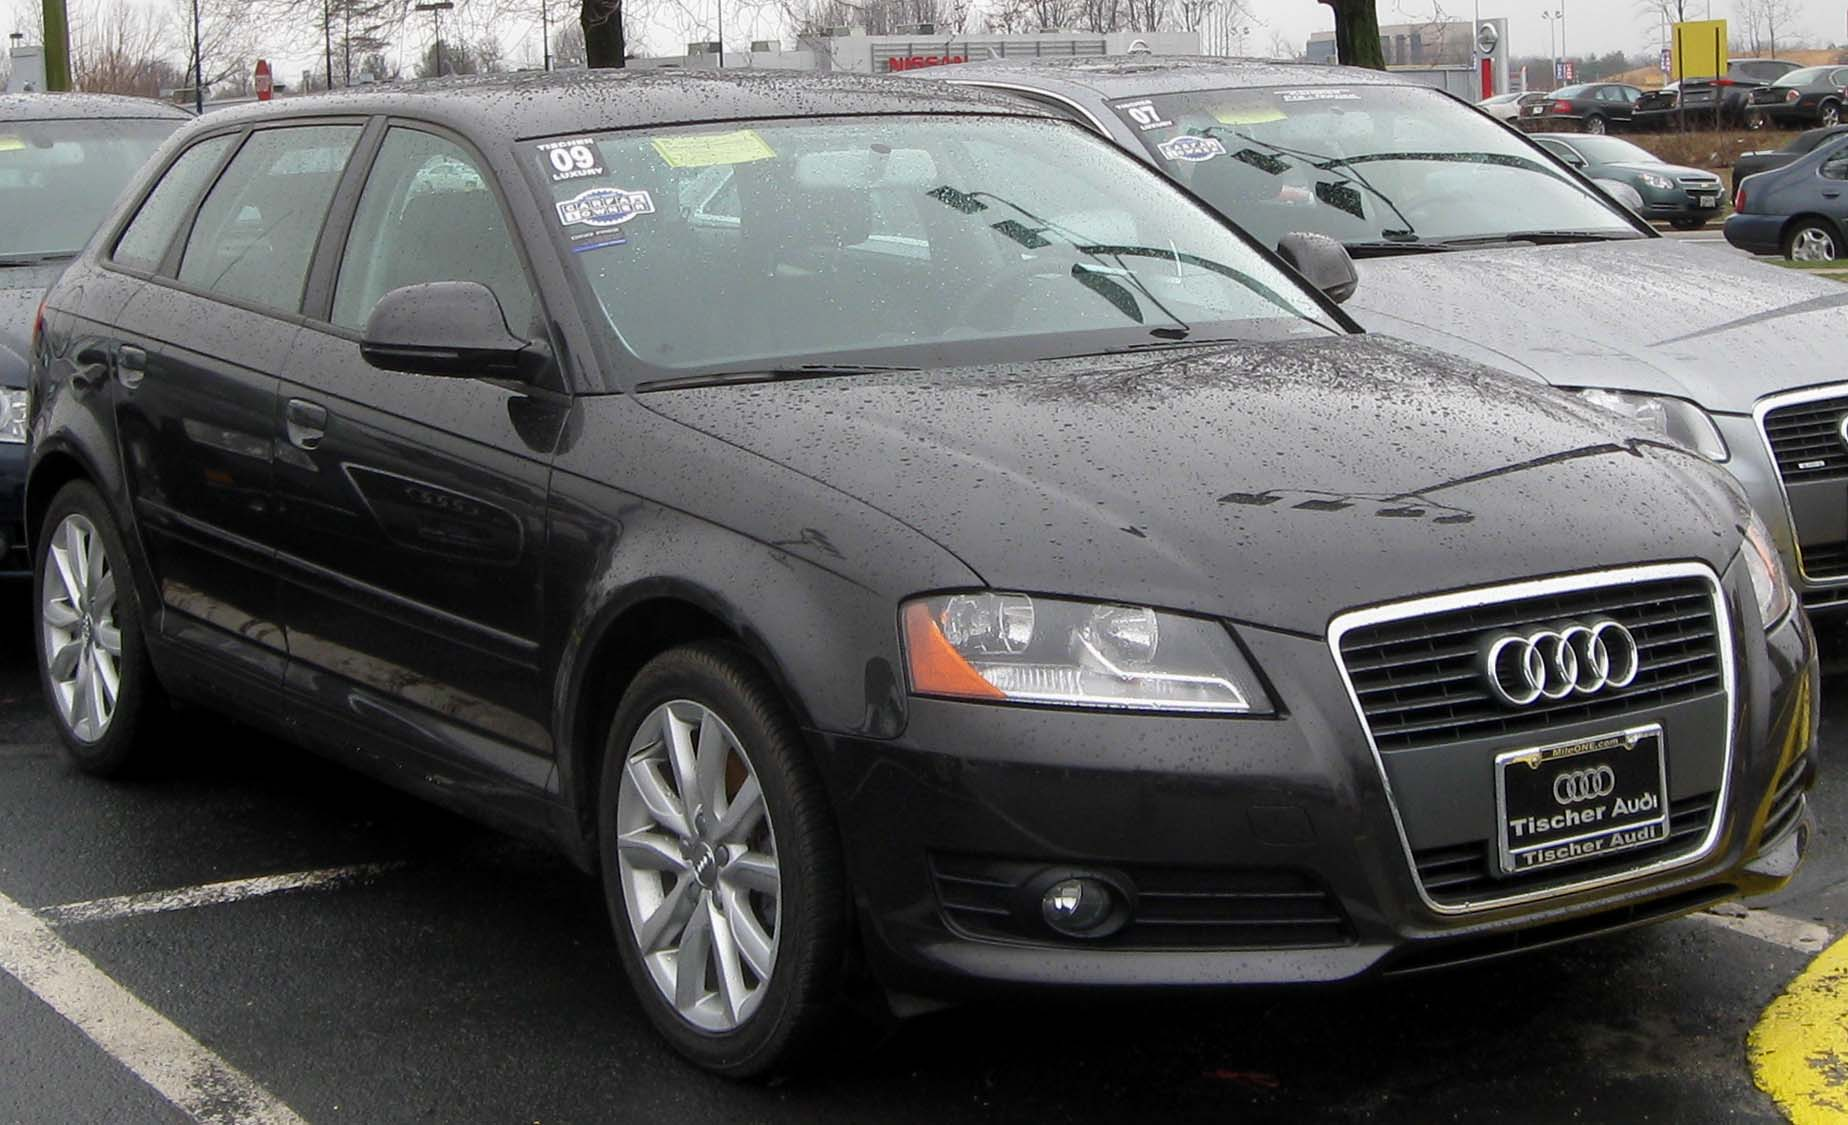 File 2009 Audi A3 03 14 2010 Jpg Wikimedia Commons